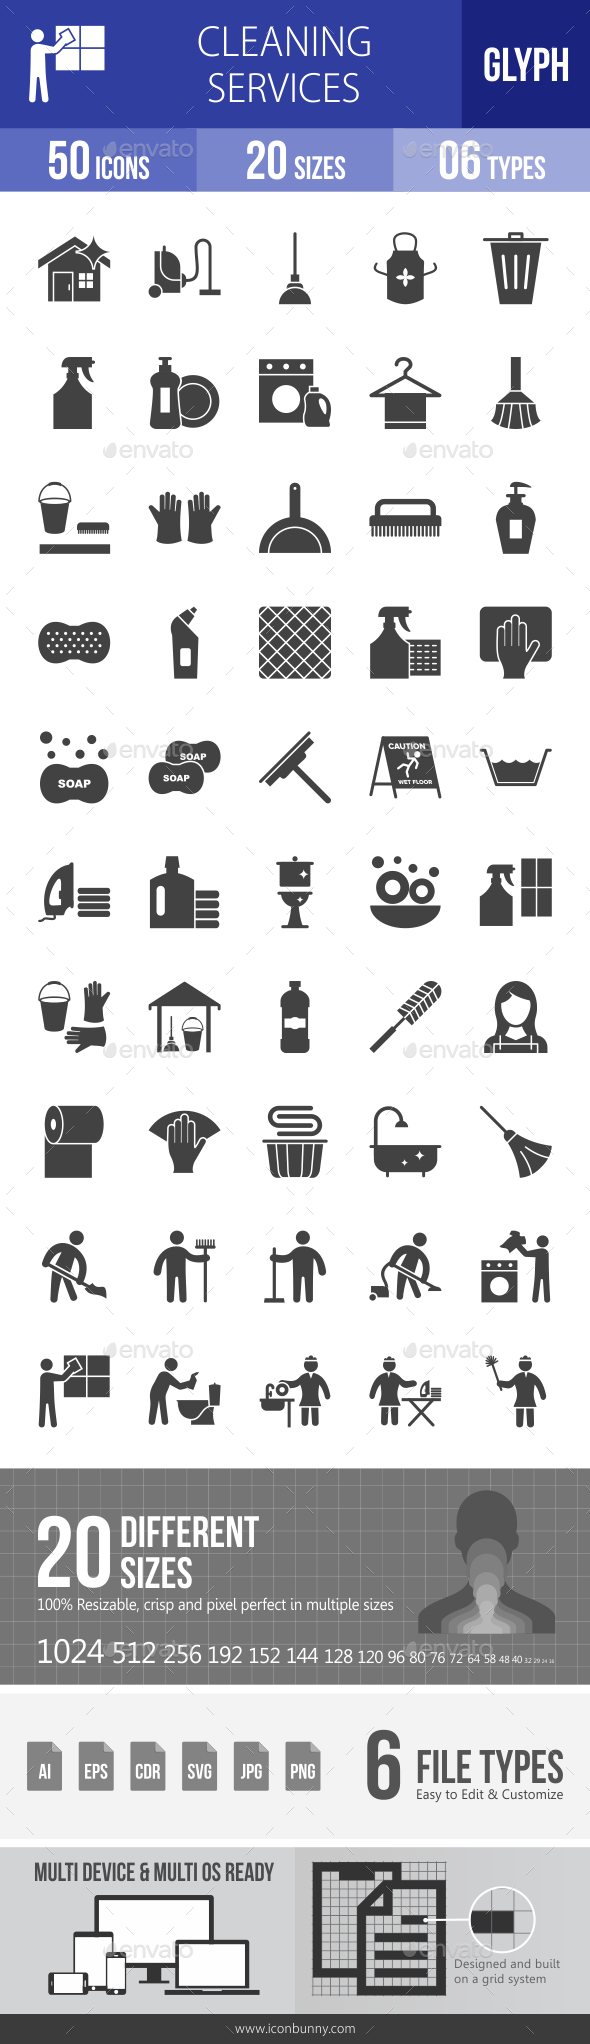 Cleaning Services Glyph Icons - Icons